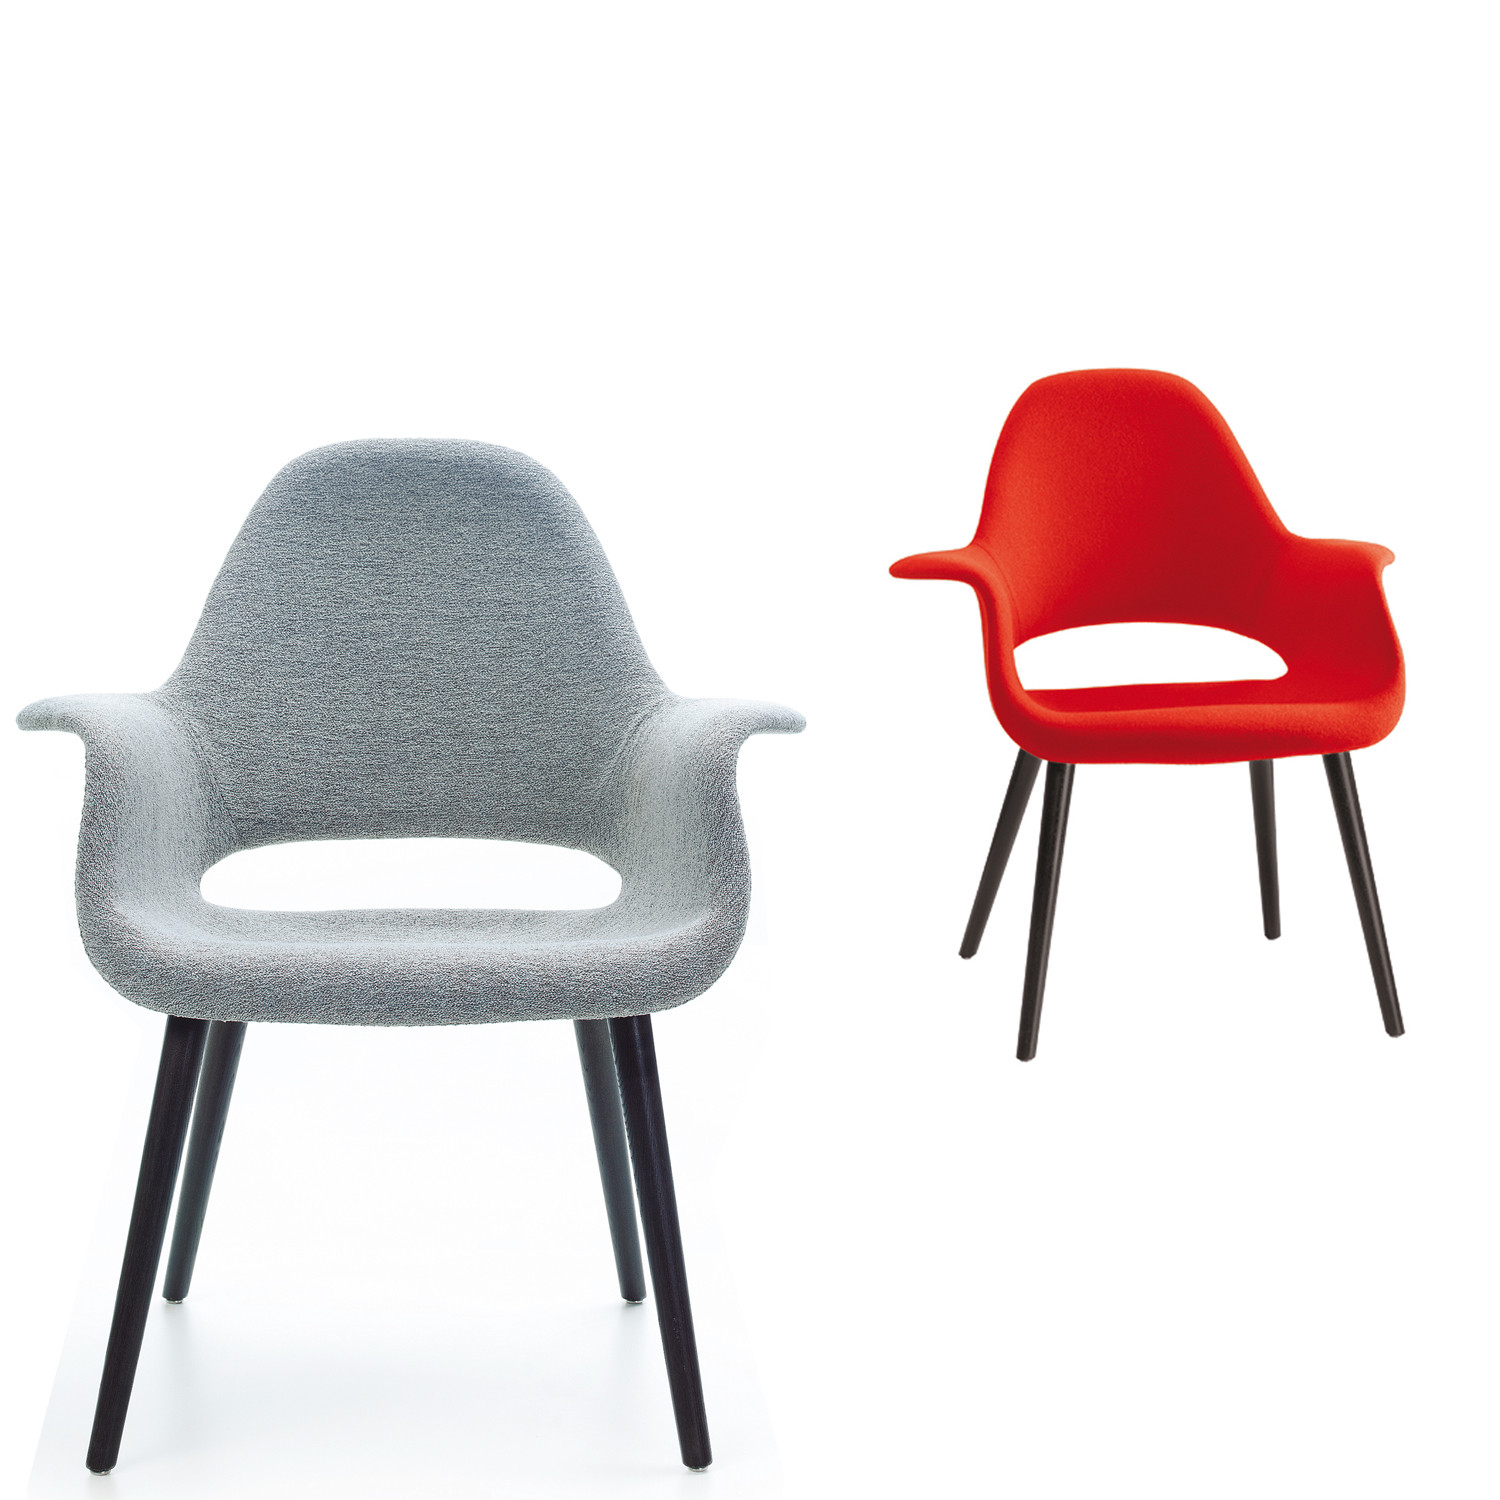 Organic Chairs | Vitra Home Collection | Apres Furniture